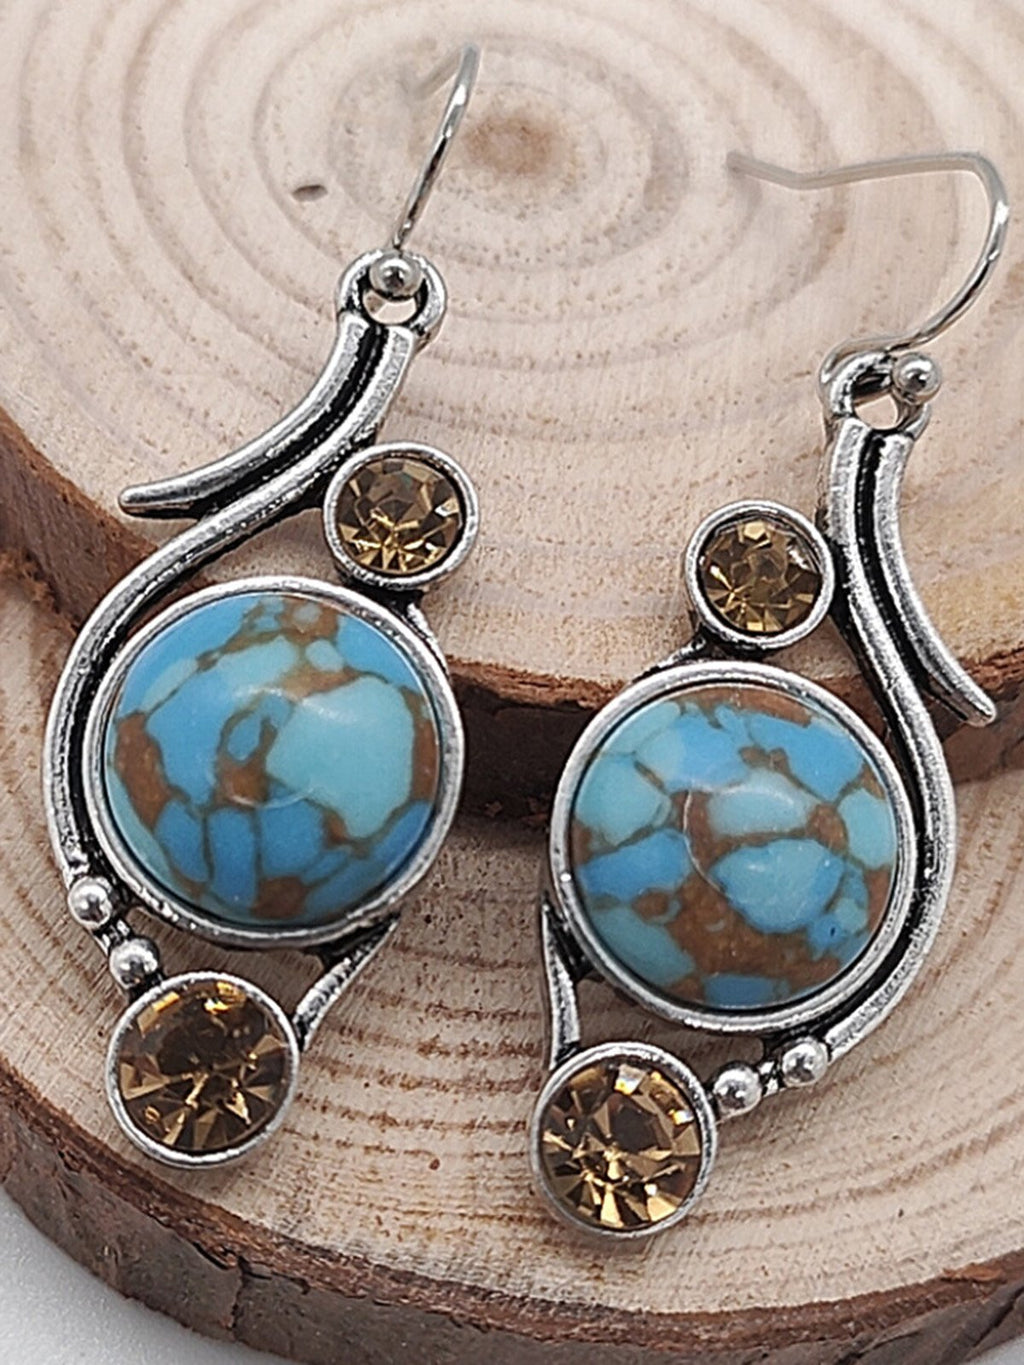 Women's Vintage Luxury Earrings Rhinestones Earrings